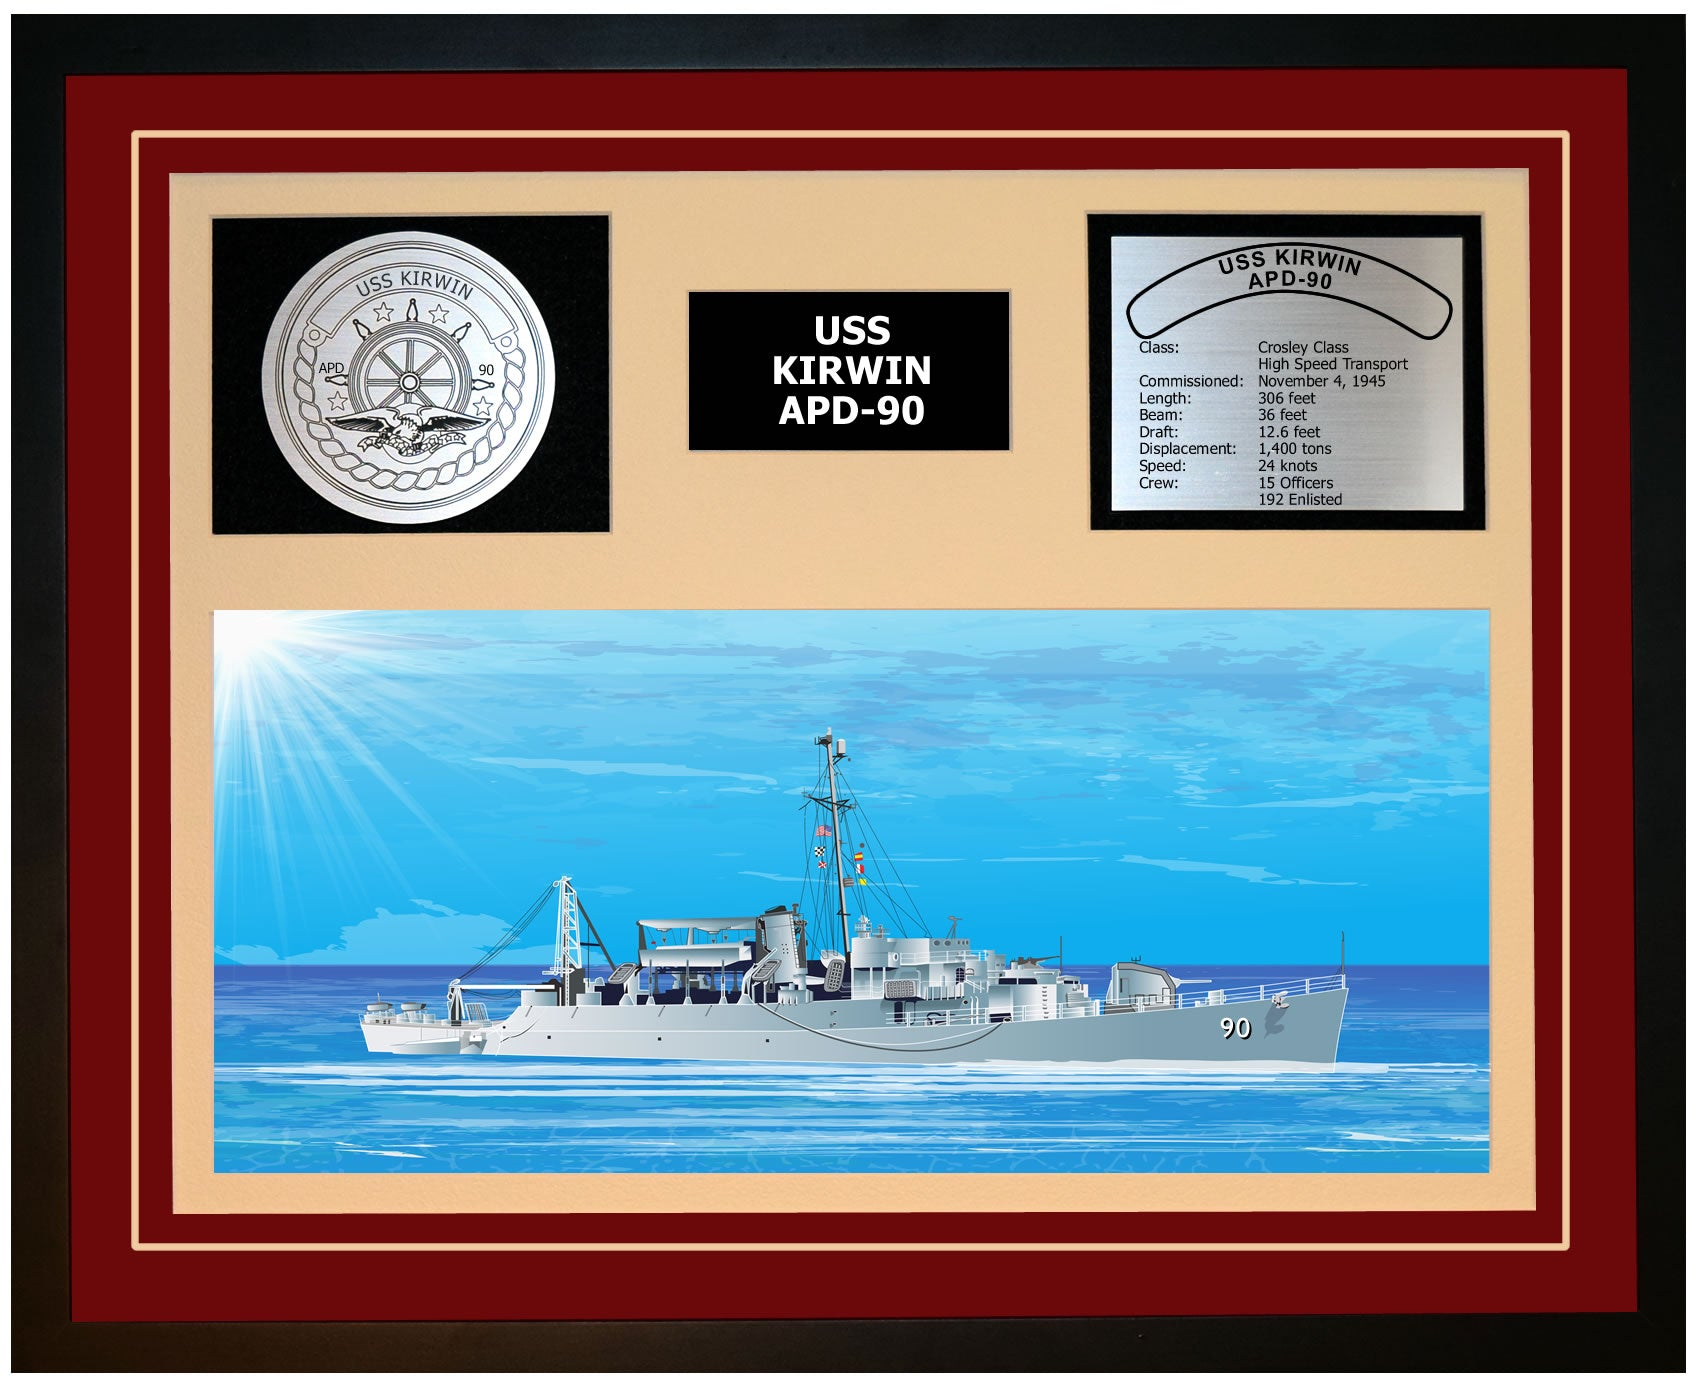 USS KIRWIN APD-90 Framed Navy Ship Display Burgundy